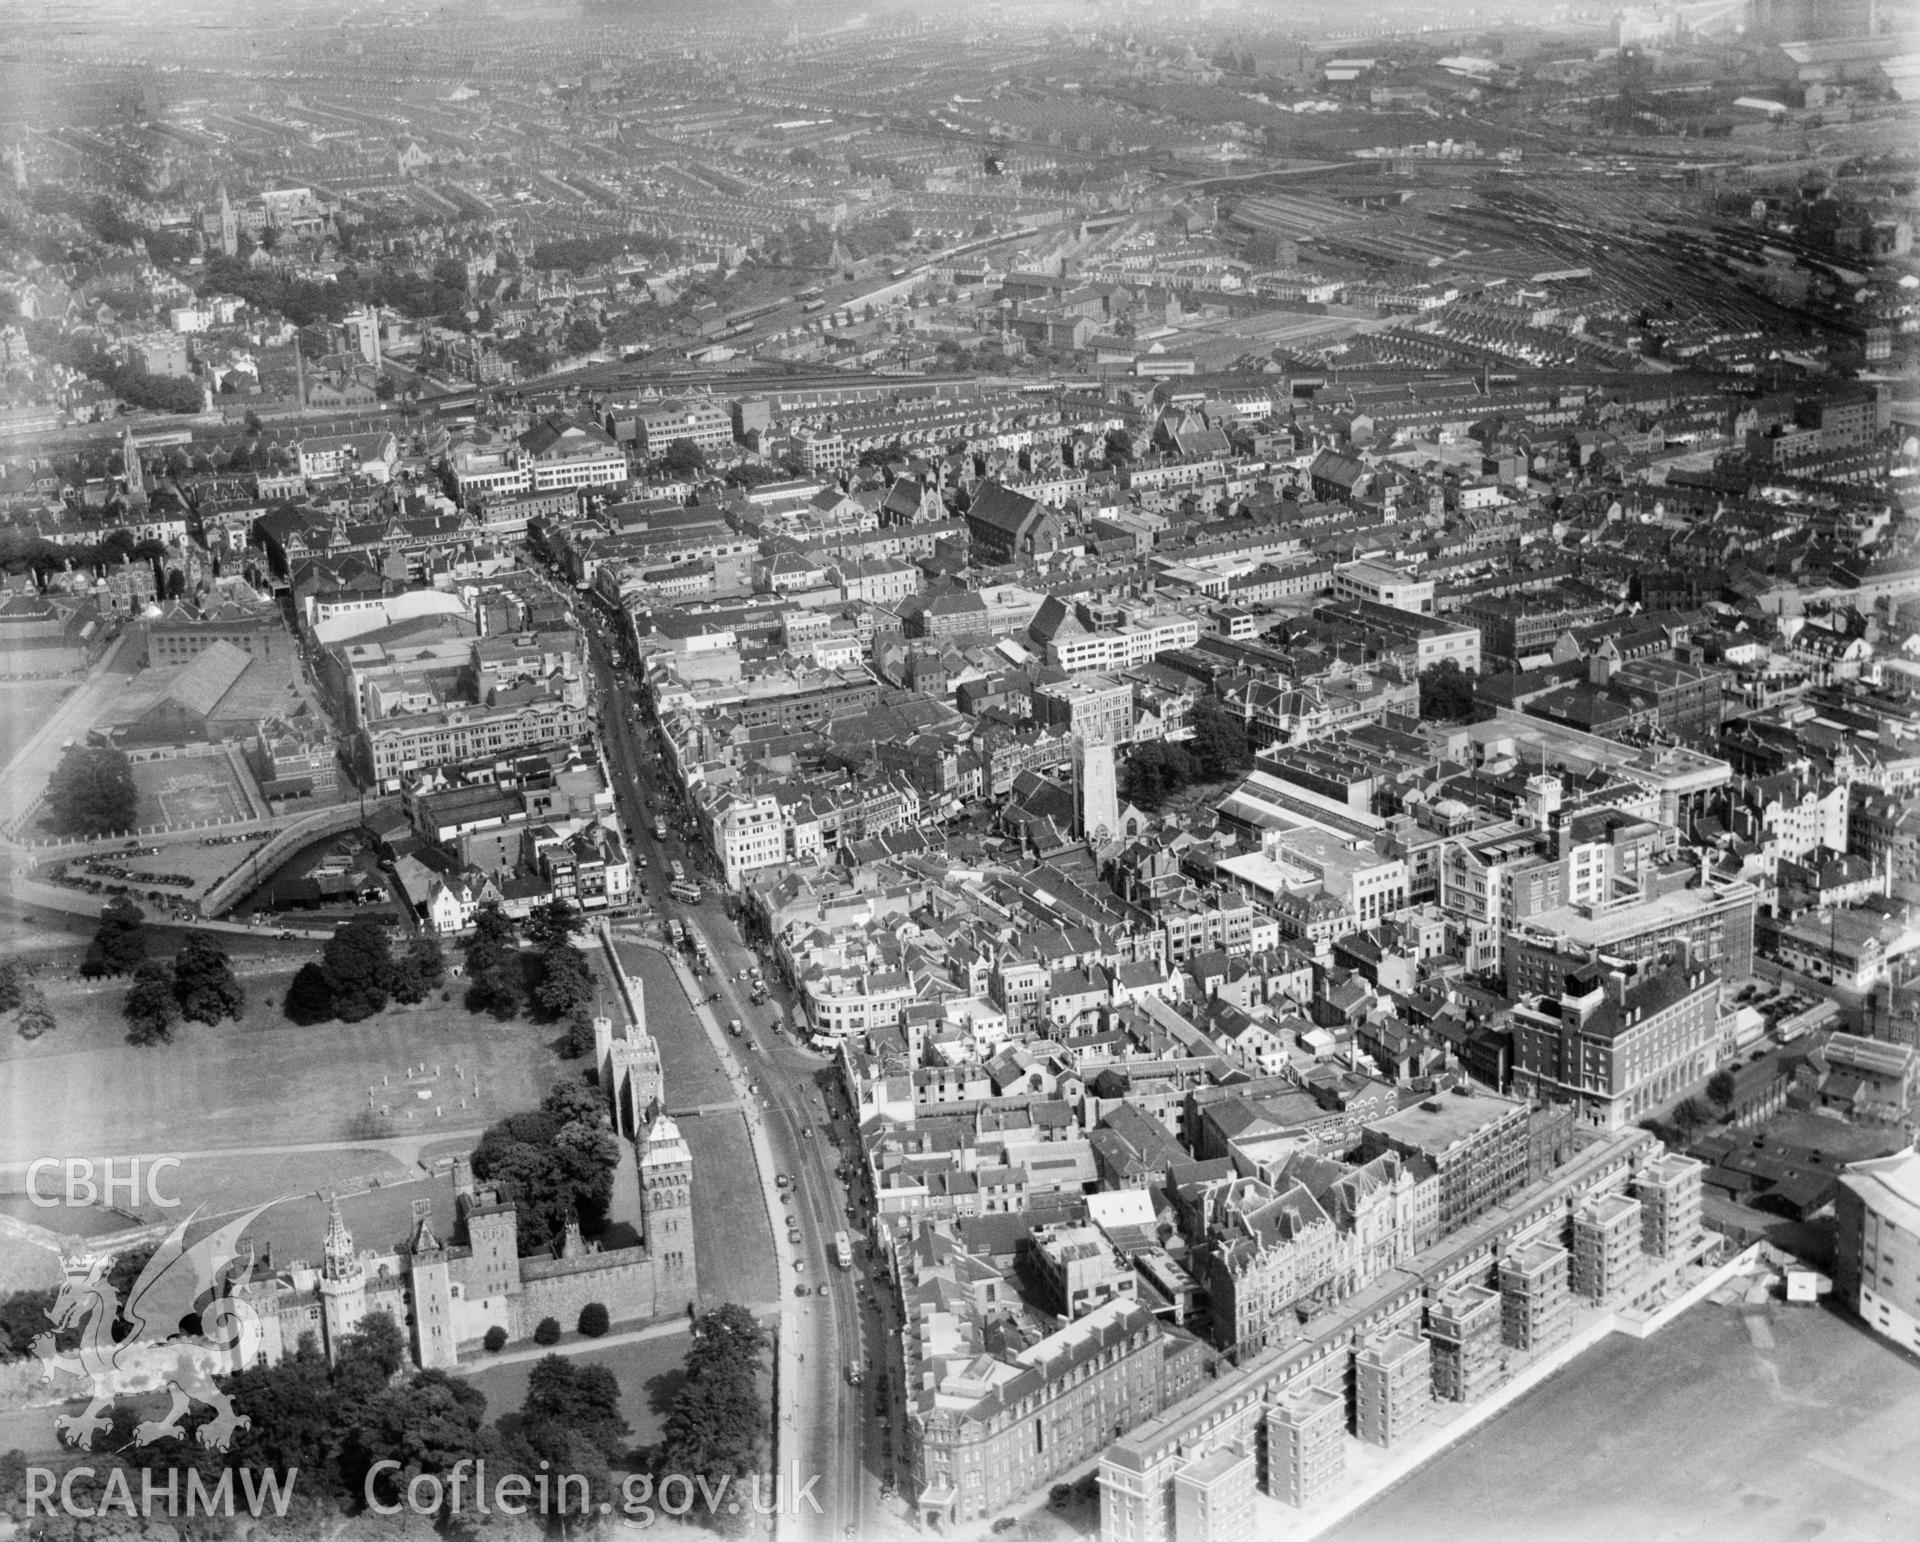 General view of central Cardiff, oblique aerial view. 5?x4? black and white glass plate negative.